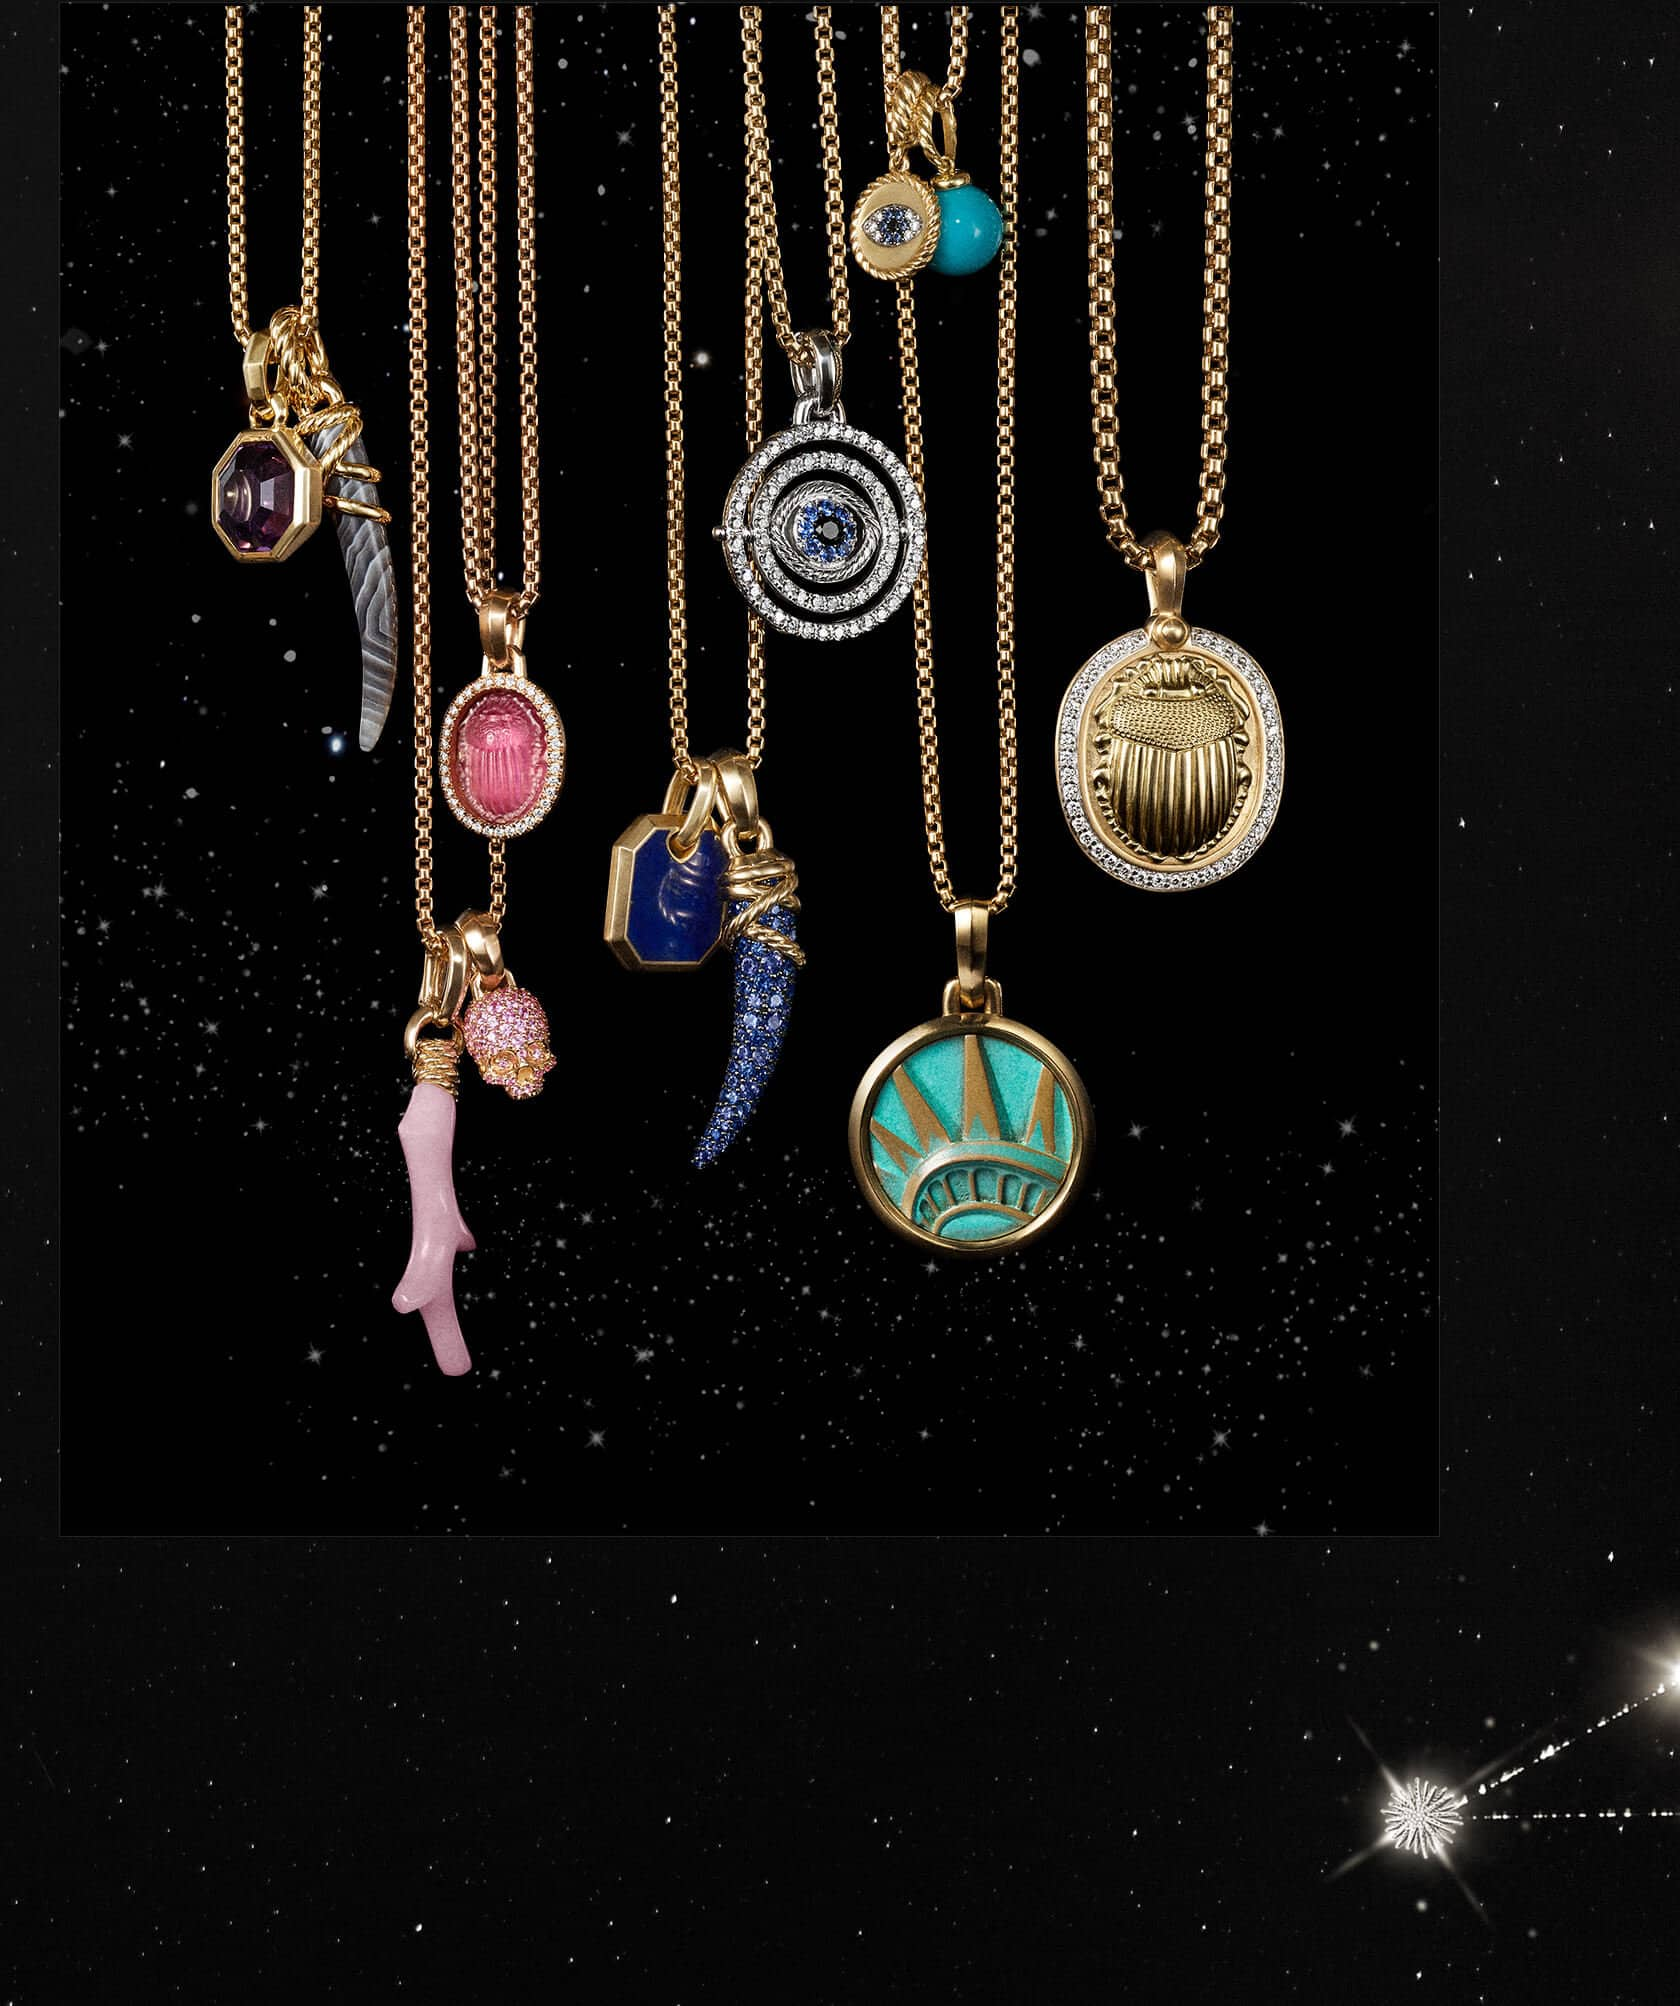 A color photograph shows 12 David Yurman amulet pendants hanging from a horizontal row of chain necklaces in front of a starry night sky. The women's jewelry is crafted from 18K yellow gold or sterling silver with or without pavé diamonds and an array of colored gemstones. The pendants come in various shapes such as a branch of coral, horn, dagger, or skull or depict a multitude of images such as a scarab and the Statue of Liberty's crown.